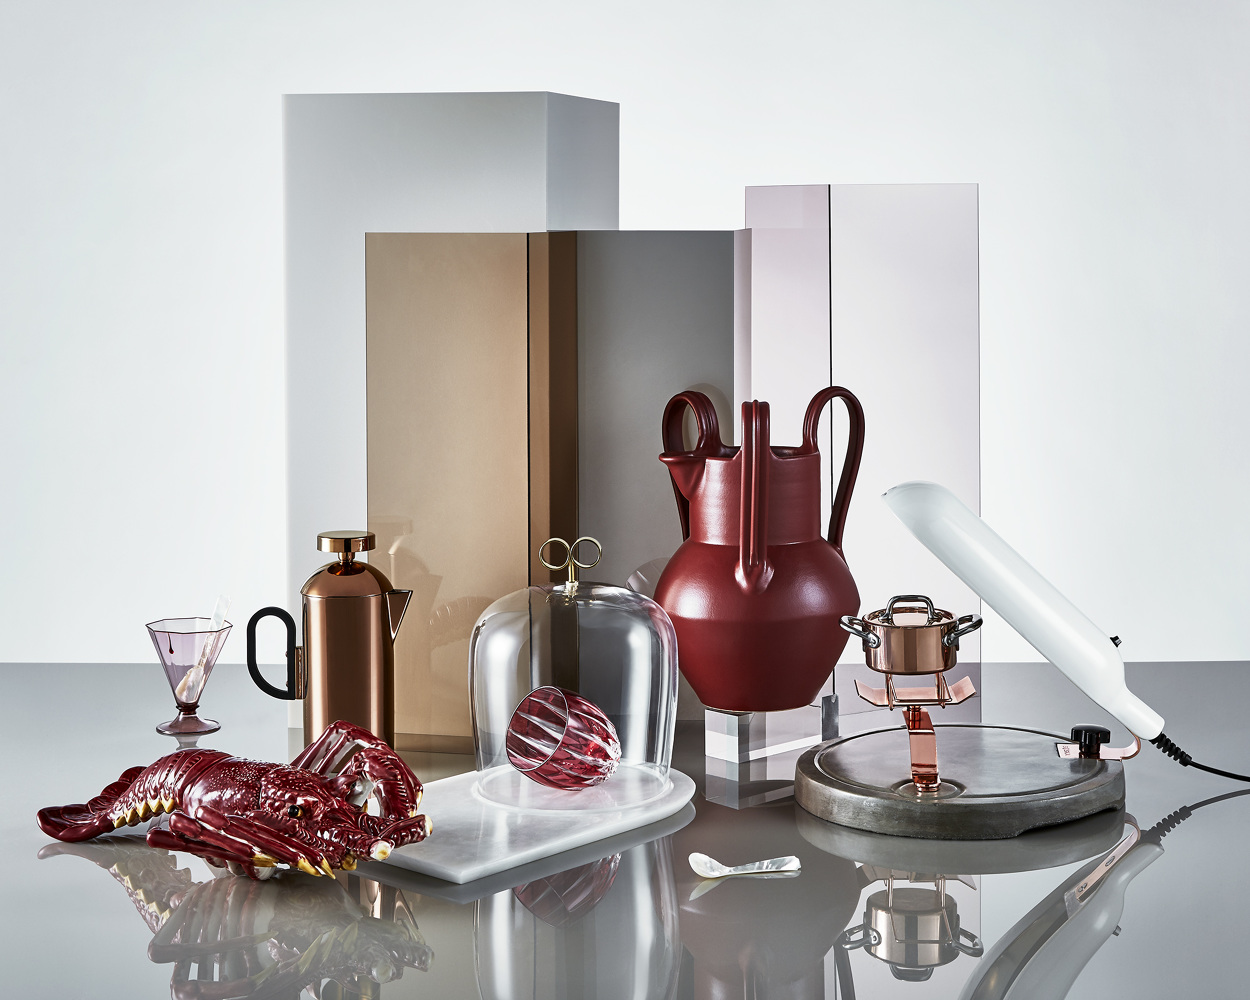 Telegraph Luxury Gift Guide by Baker & Evans